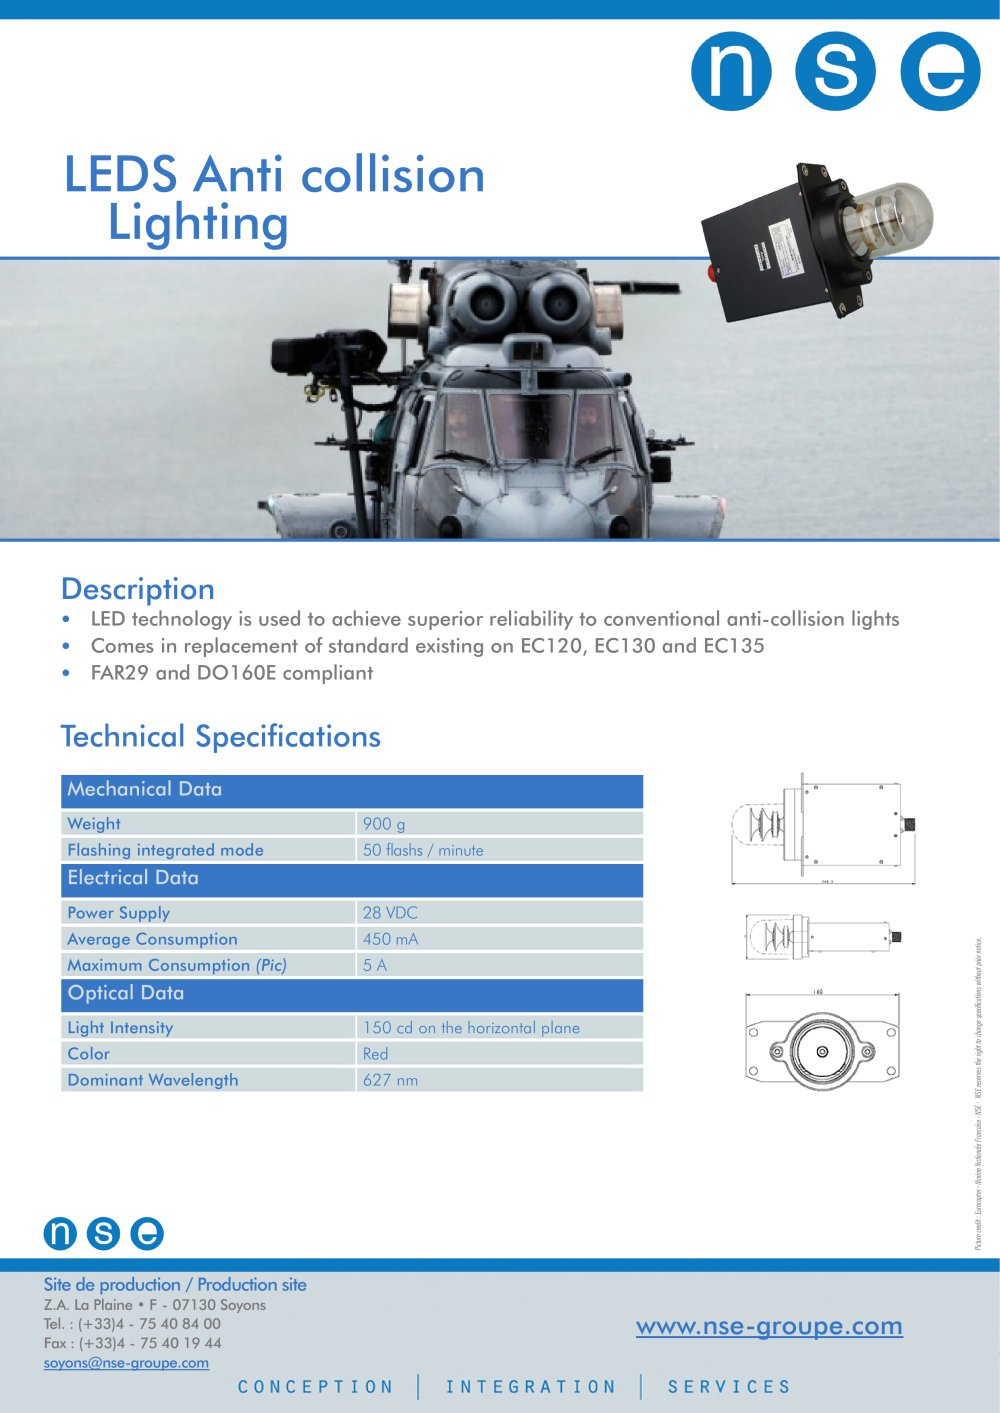 LEDS Anti Collision Lighting   1 / 1 Pages